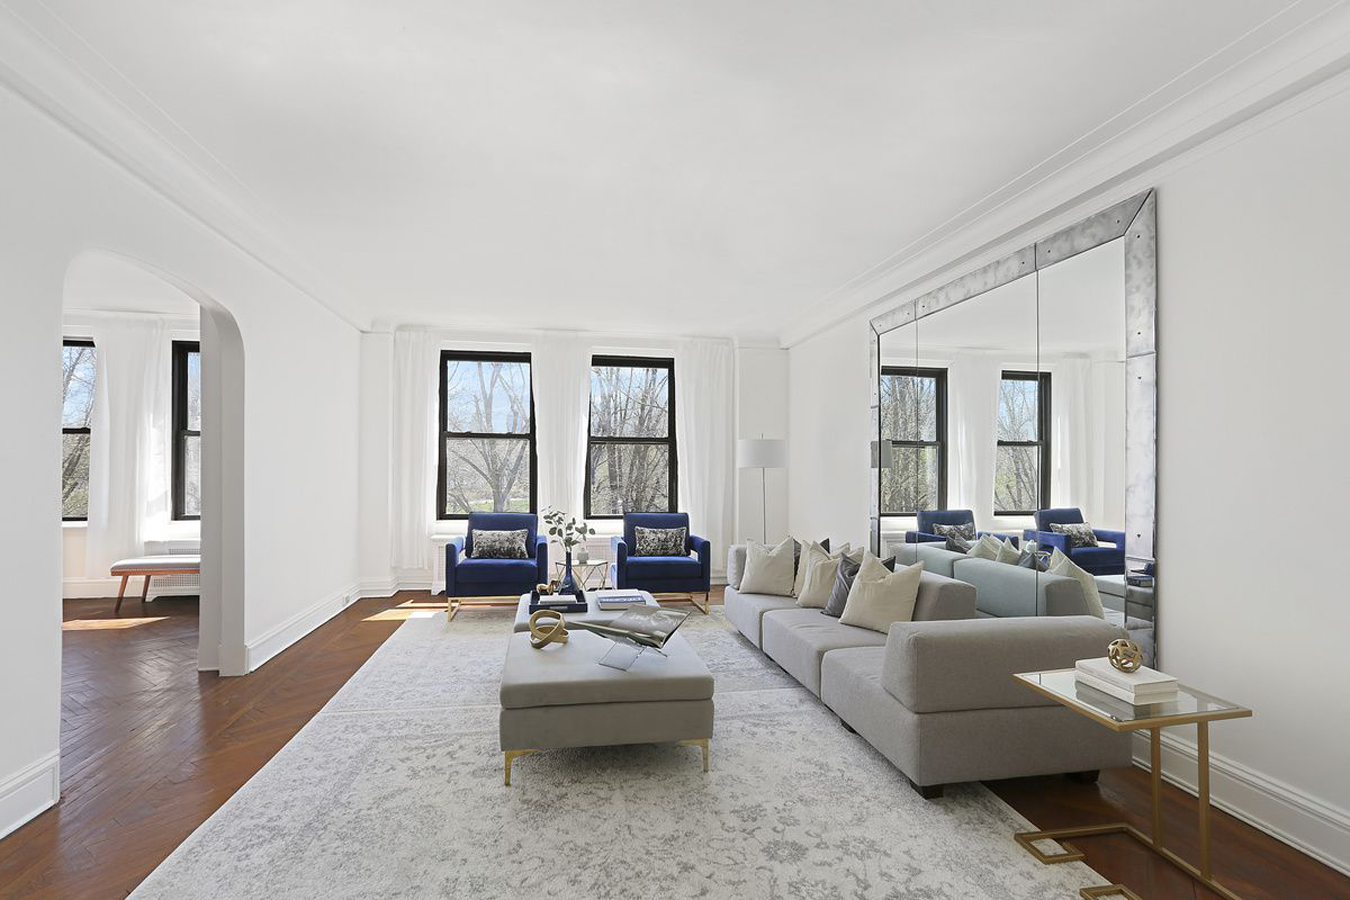 The White House, 262 Central Park West - NYC Apartments